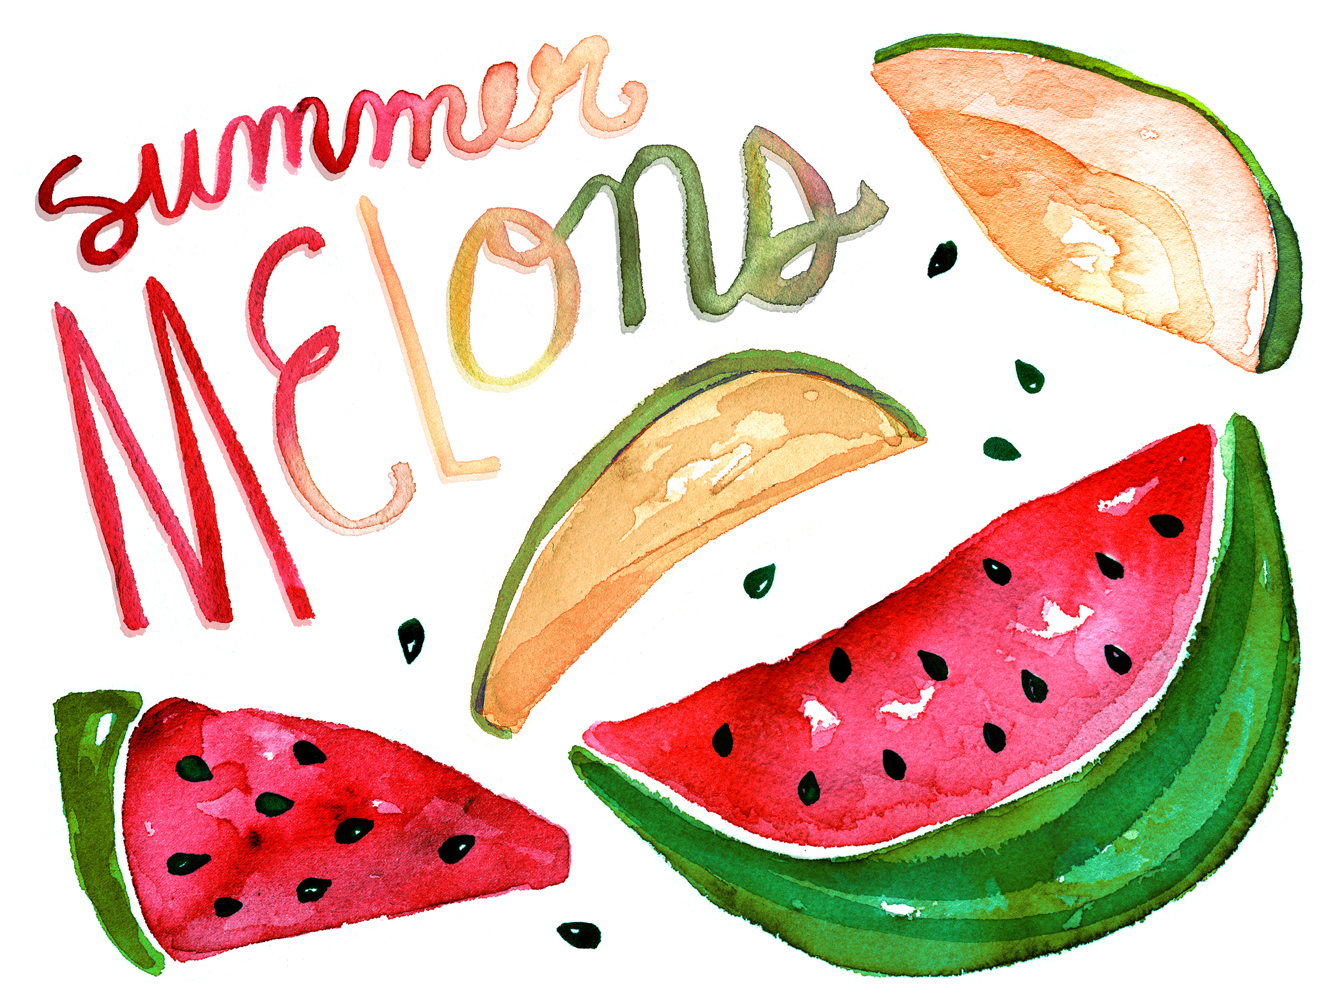 melons watercolor illustration